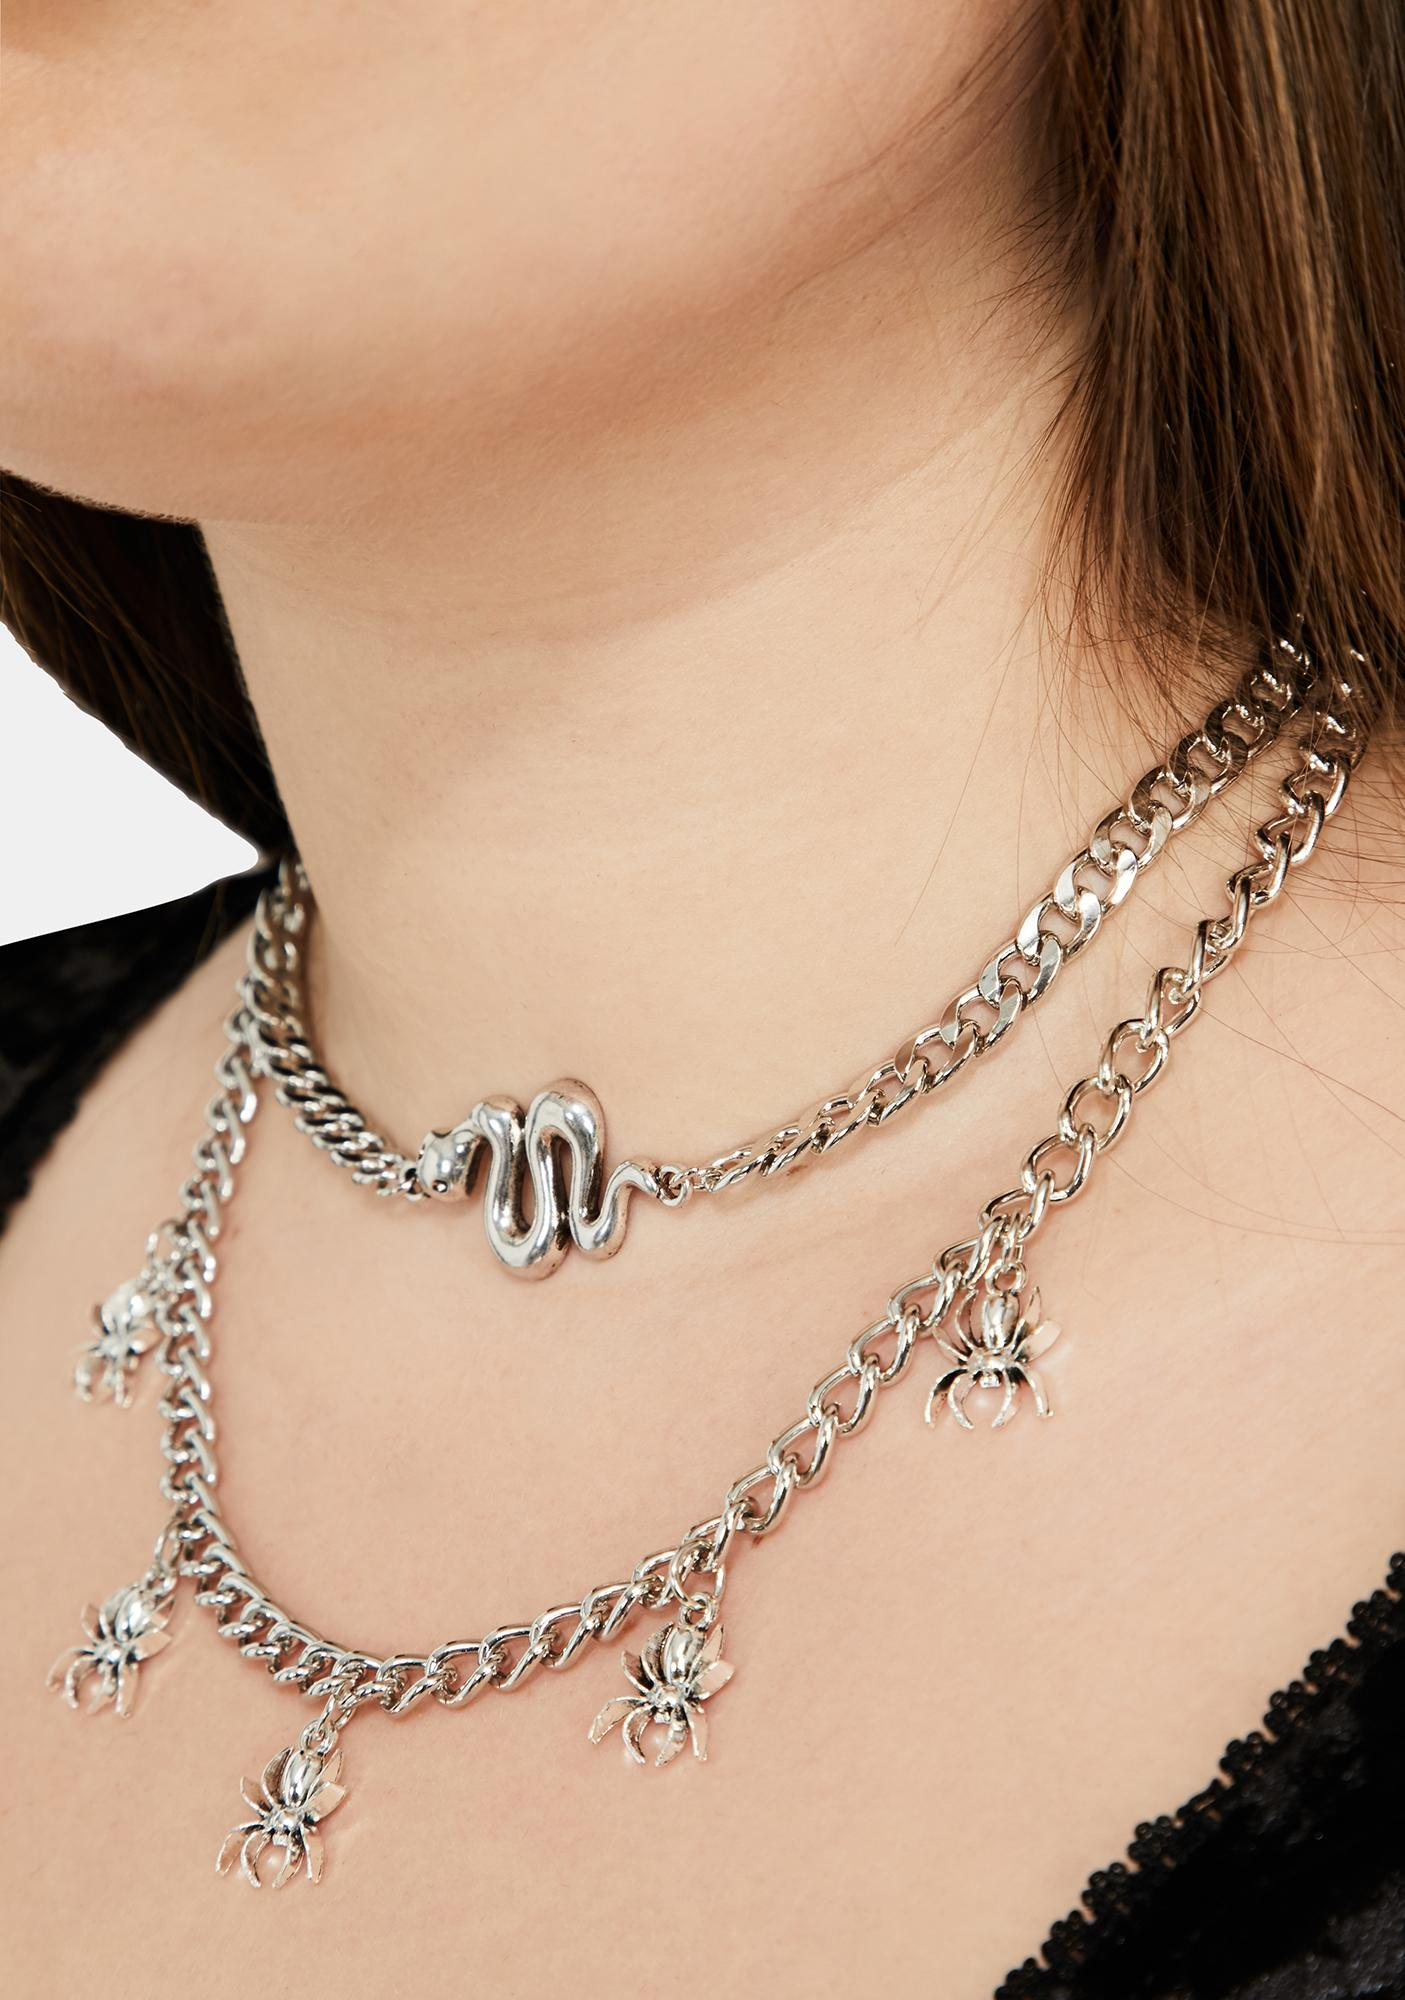 In The Cauldron Chain Necklace